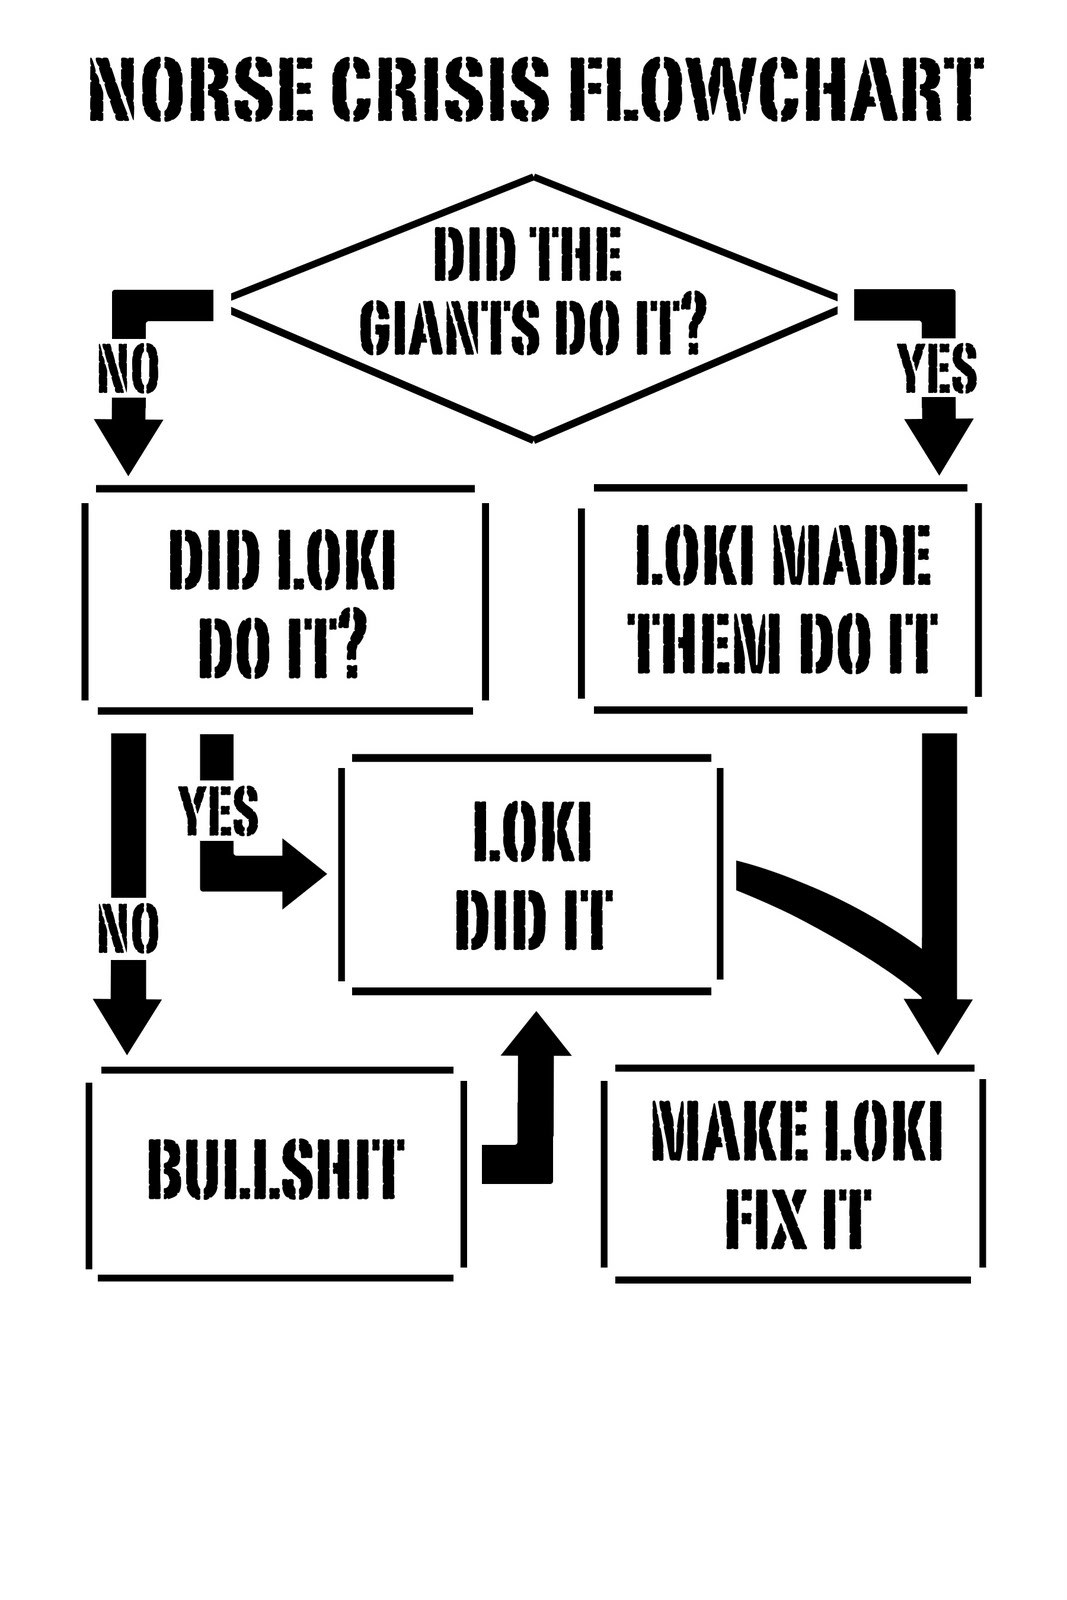 themightyblim:  miss-azura:  bifrostedflake:    MAKE LOKI FIX IT  Sad thing is in actual mythology this is very accurate. But loki does always fix the problem and usually the other gods got something good out of it in the end like magical weapons and tools, so really the other gods should stop bitching cuz when loki cleans up his messes they get free shit out of it.